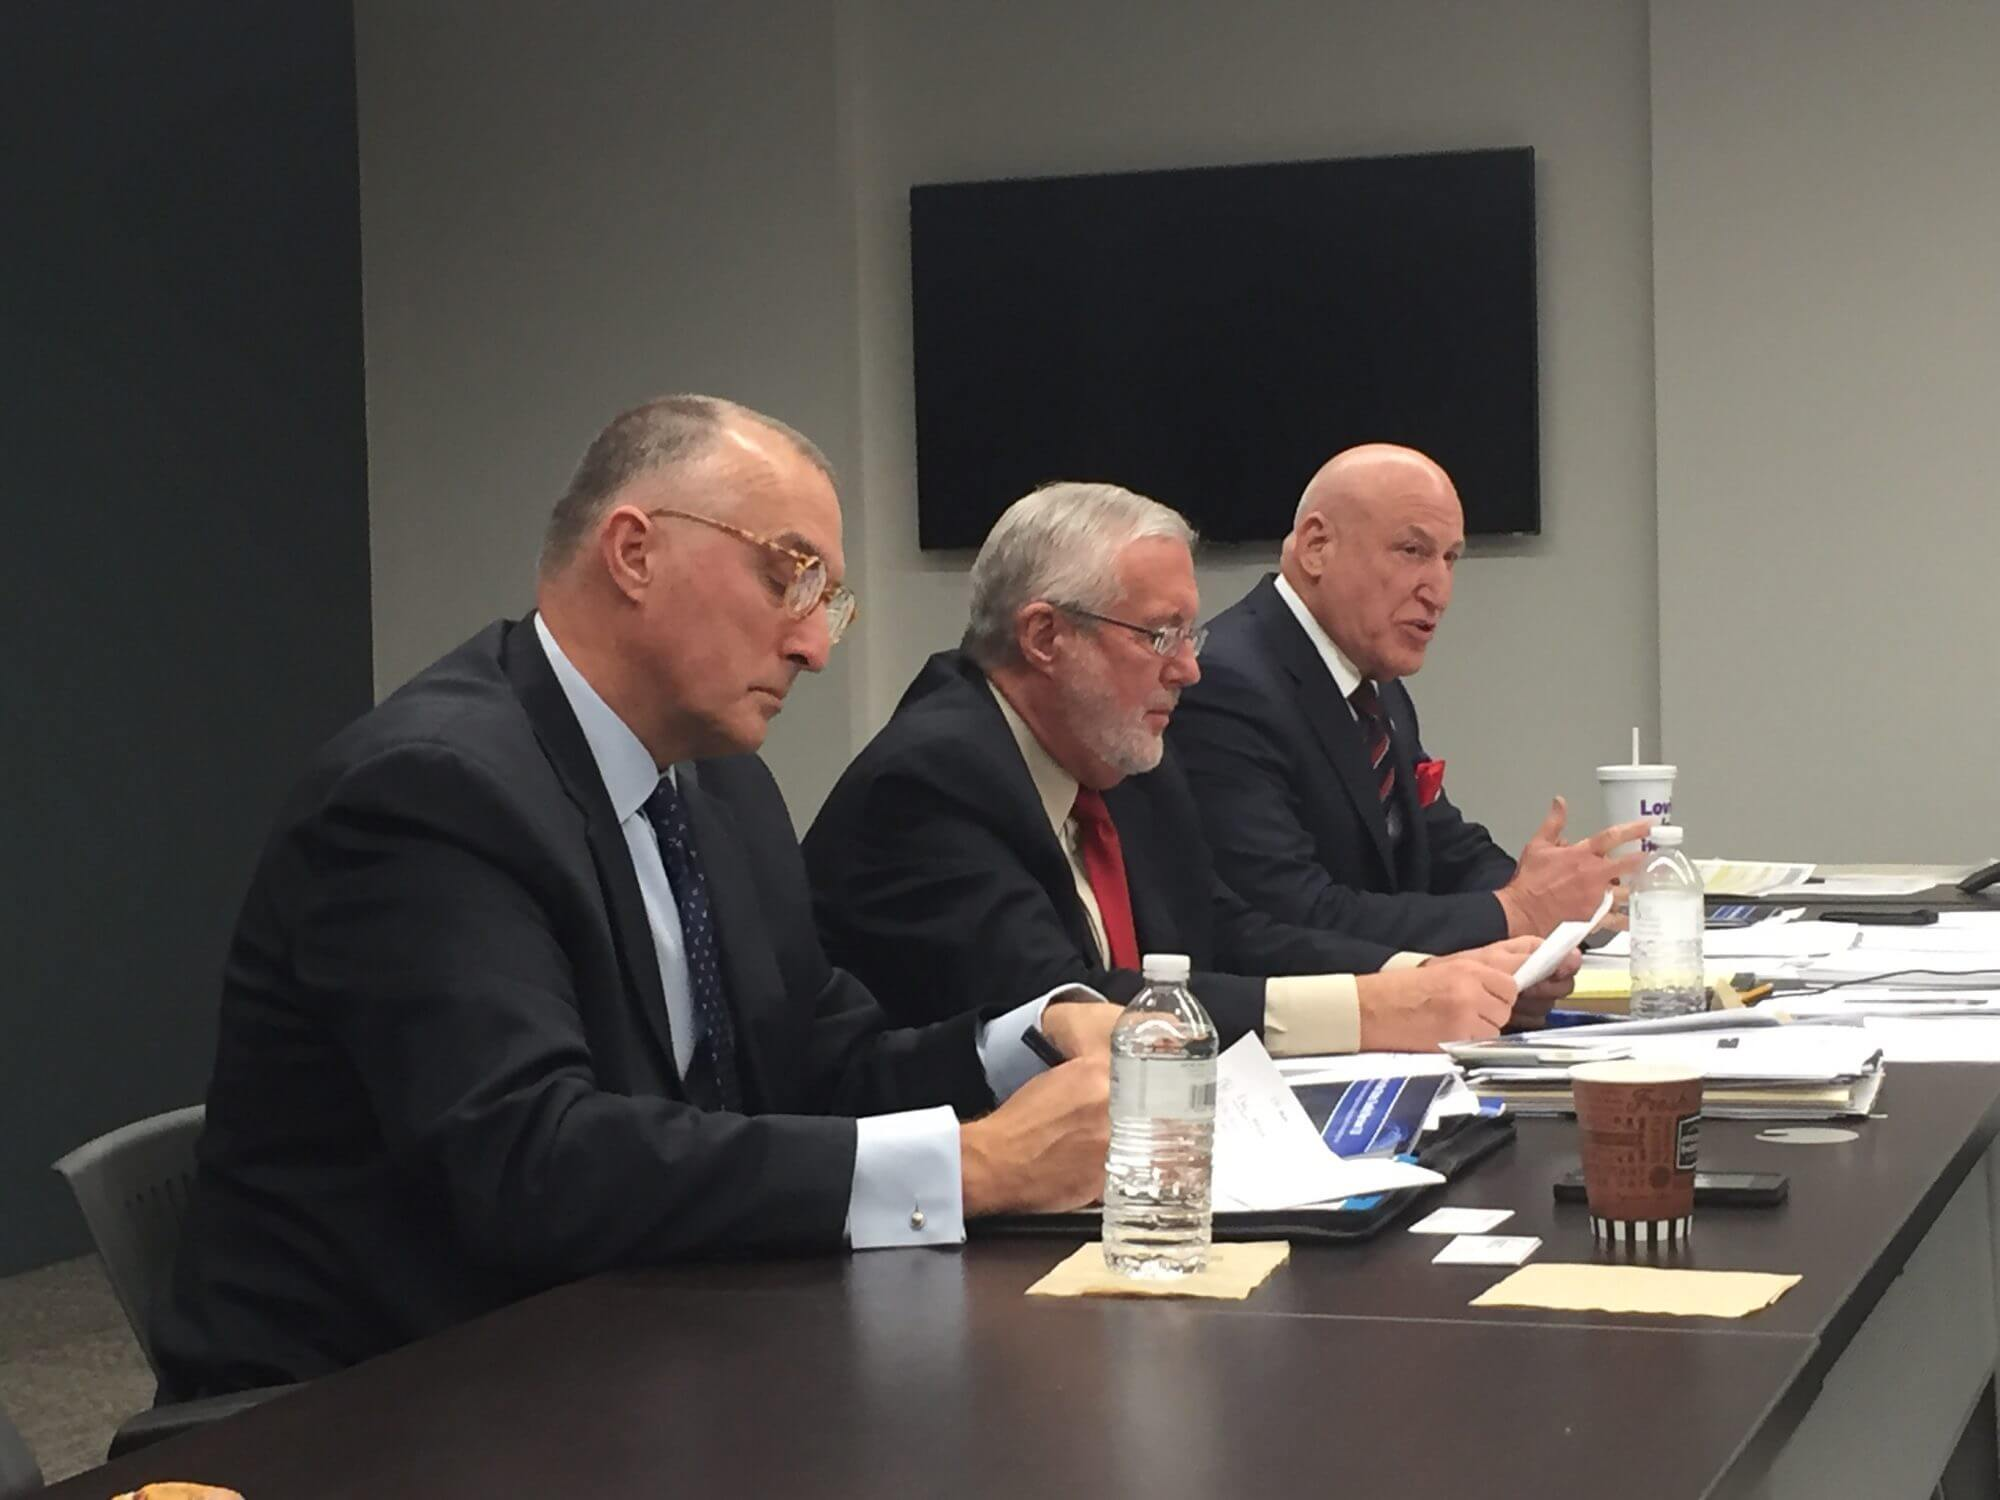 Committee report outlines policy steps for states to invest in nuclear energy